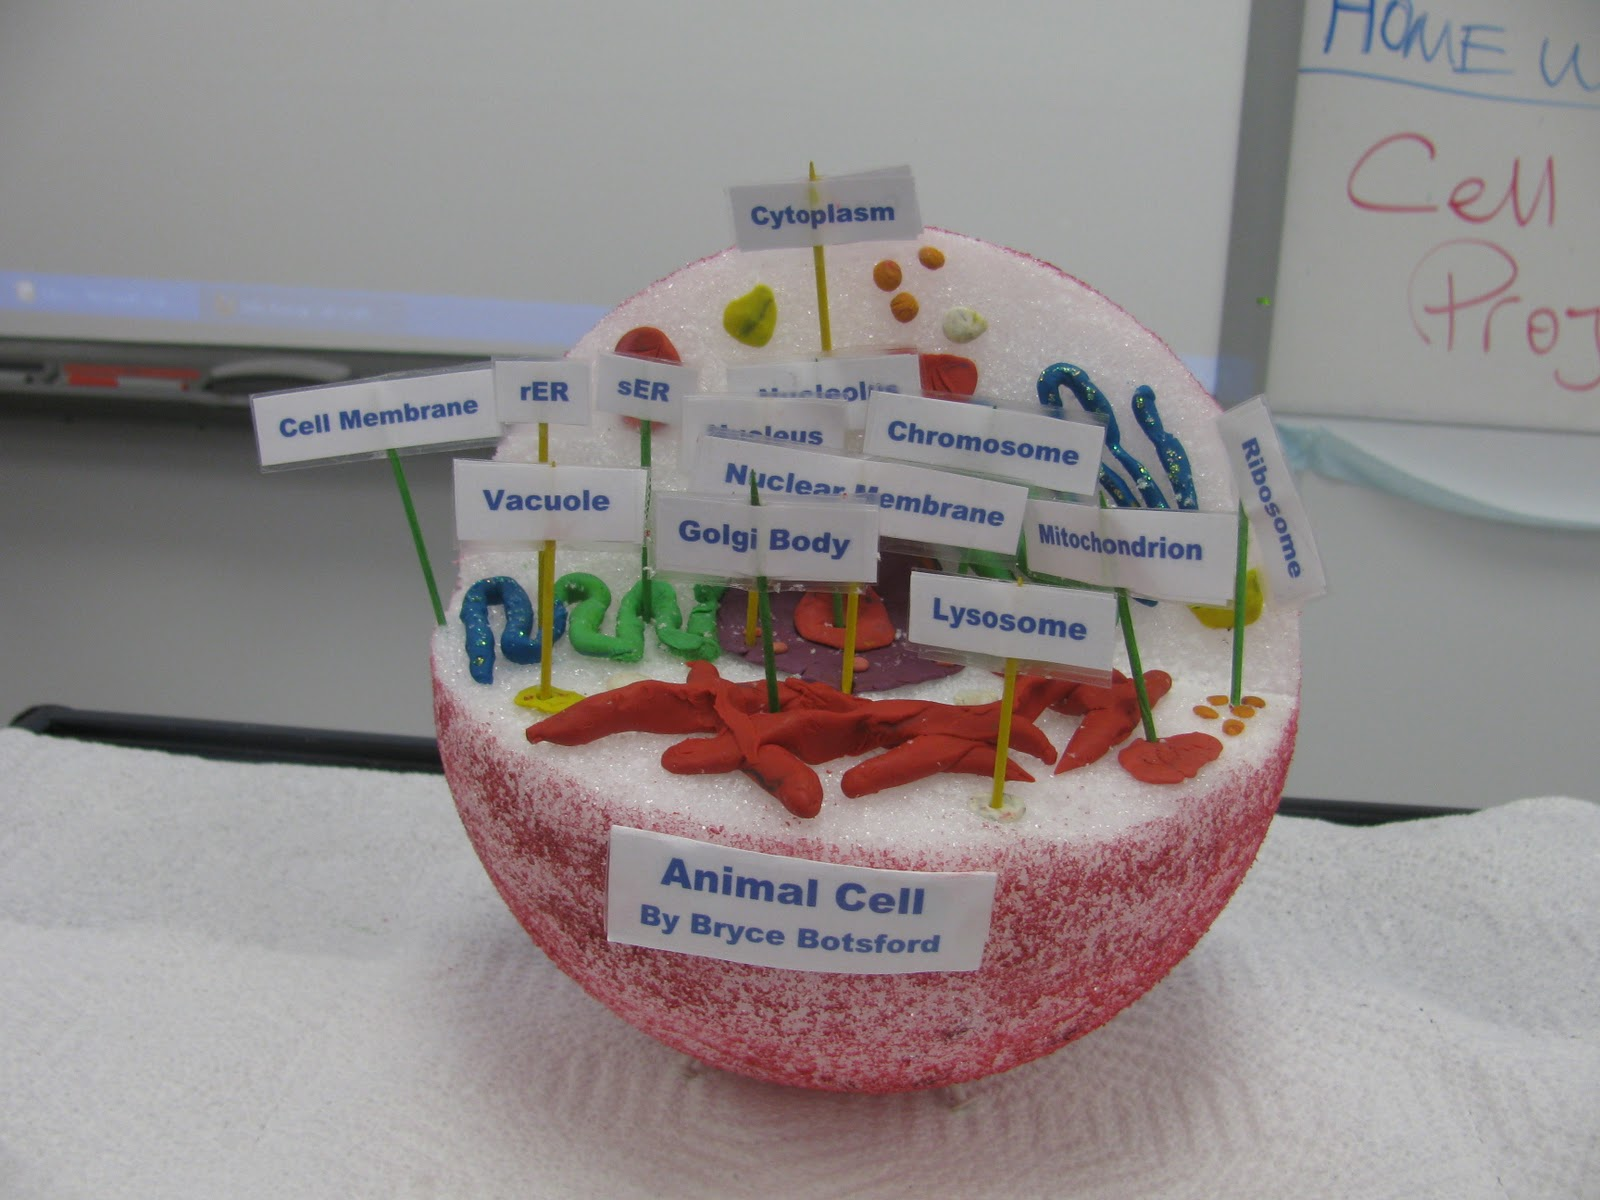 Animal Cell School Project Ideas http://mscorson.blogspot.com/2011/09/cell-model-project.html